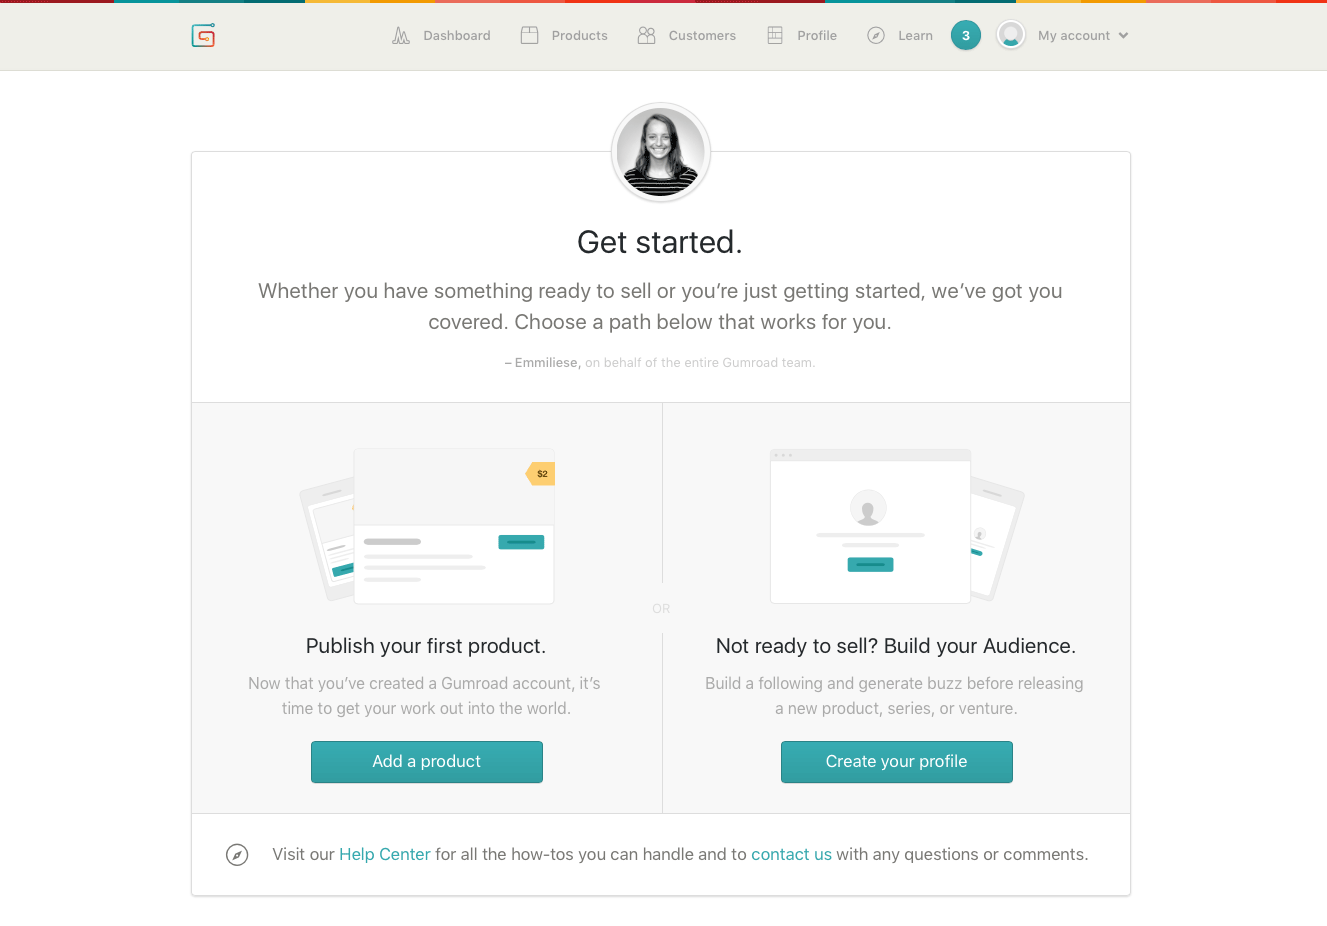 Gumroad 'get started' page